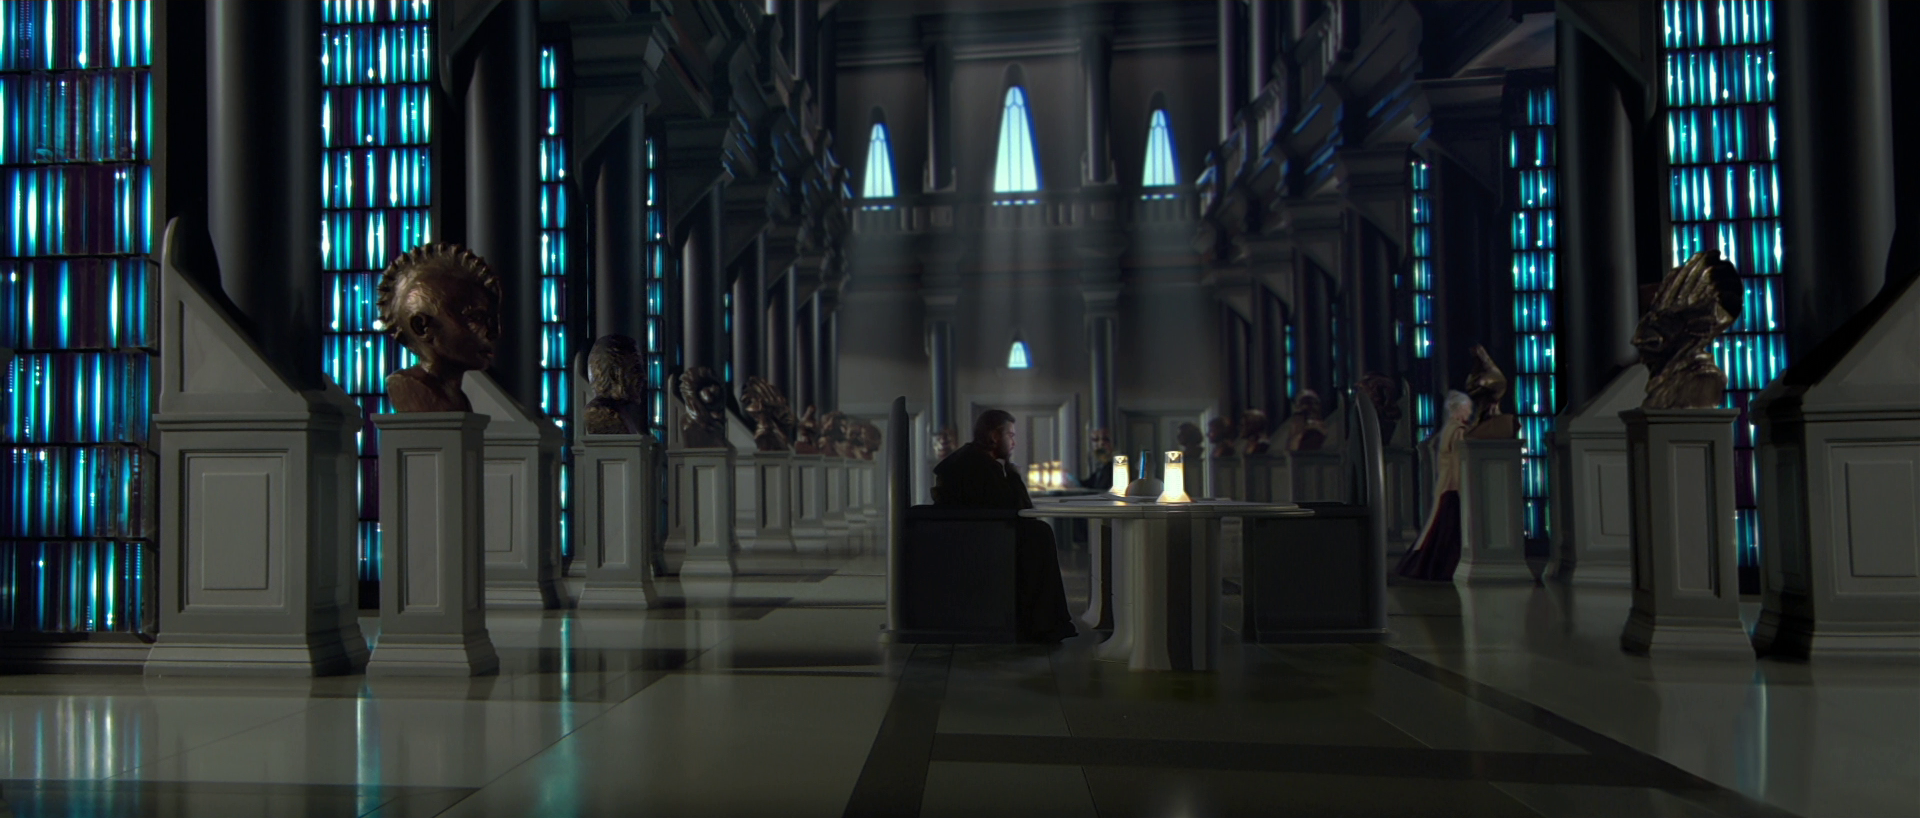 Futuristic library as seen in Star Wars